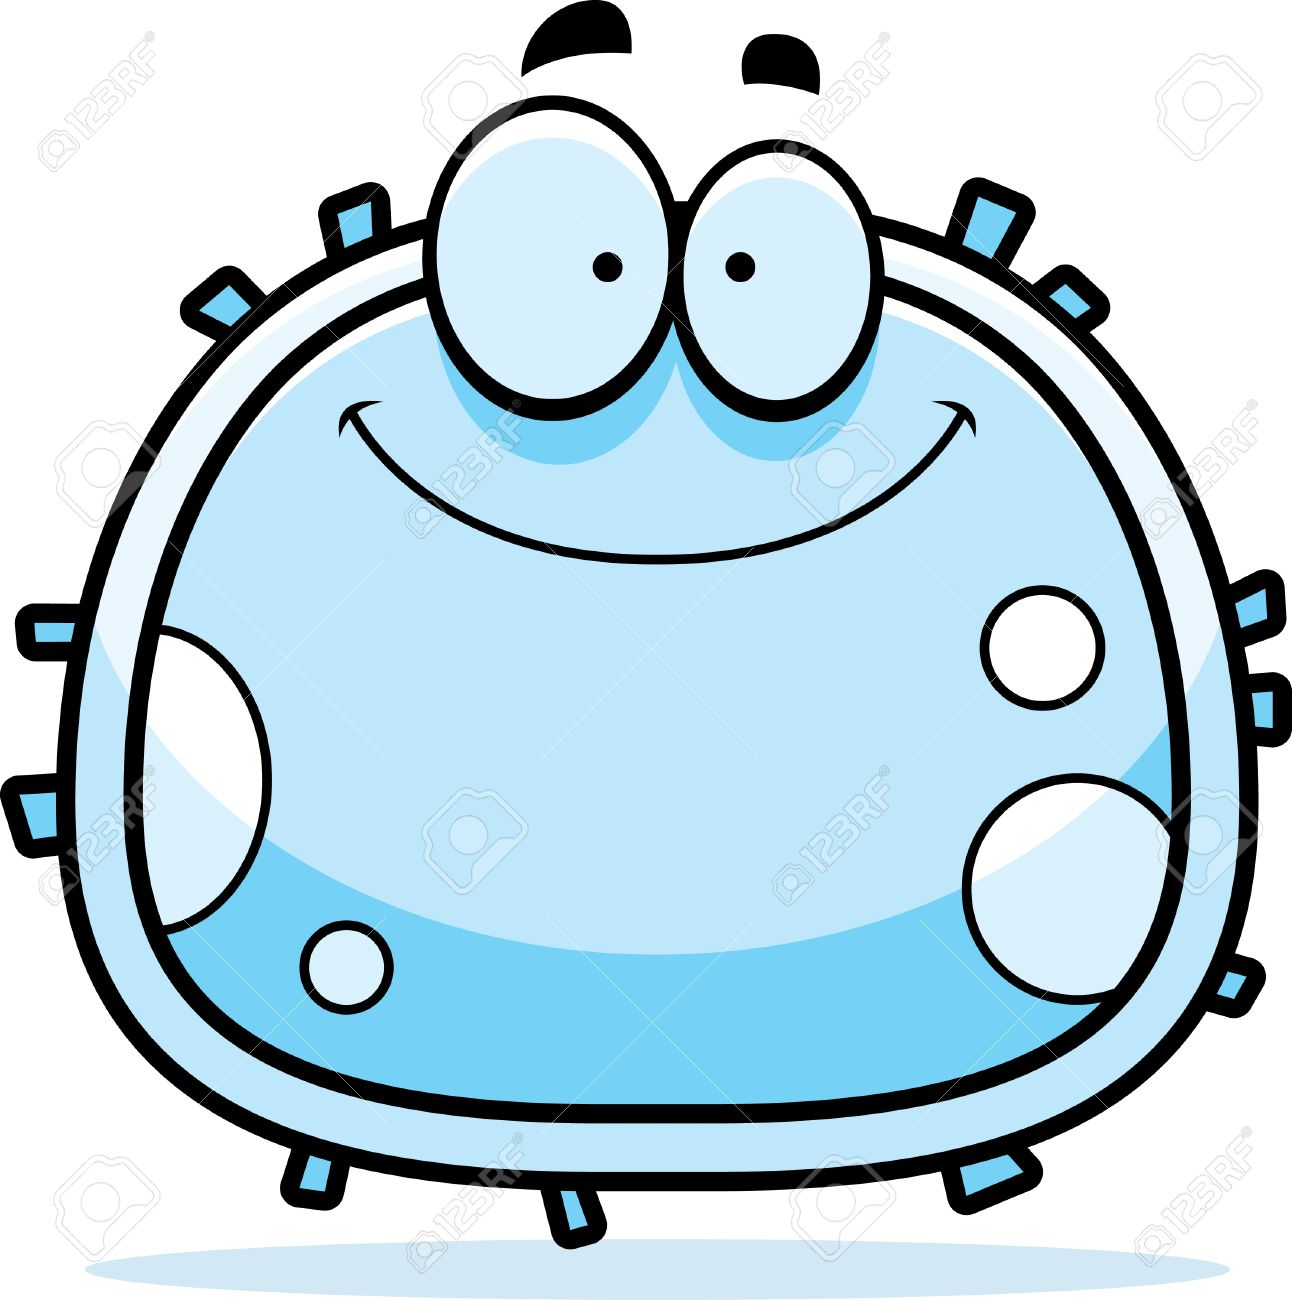 a cartoon illustration of a white blood cell smiling royalty free rh 123rf com cell clipart call clip art